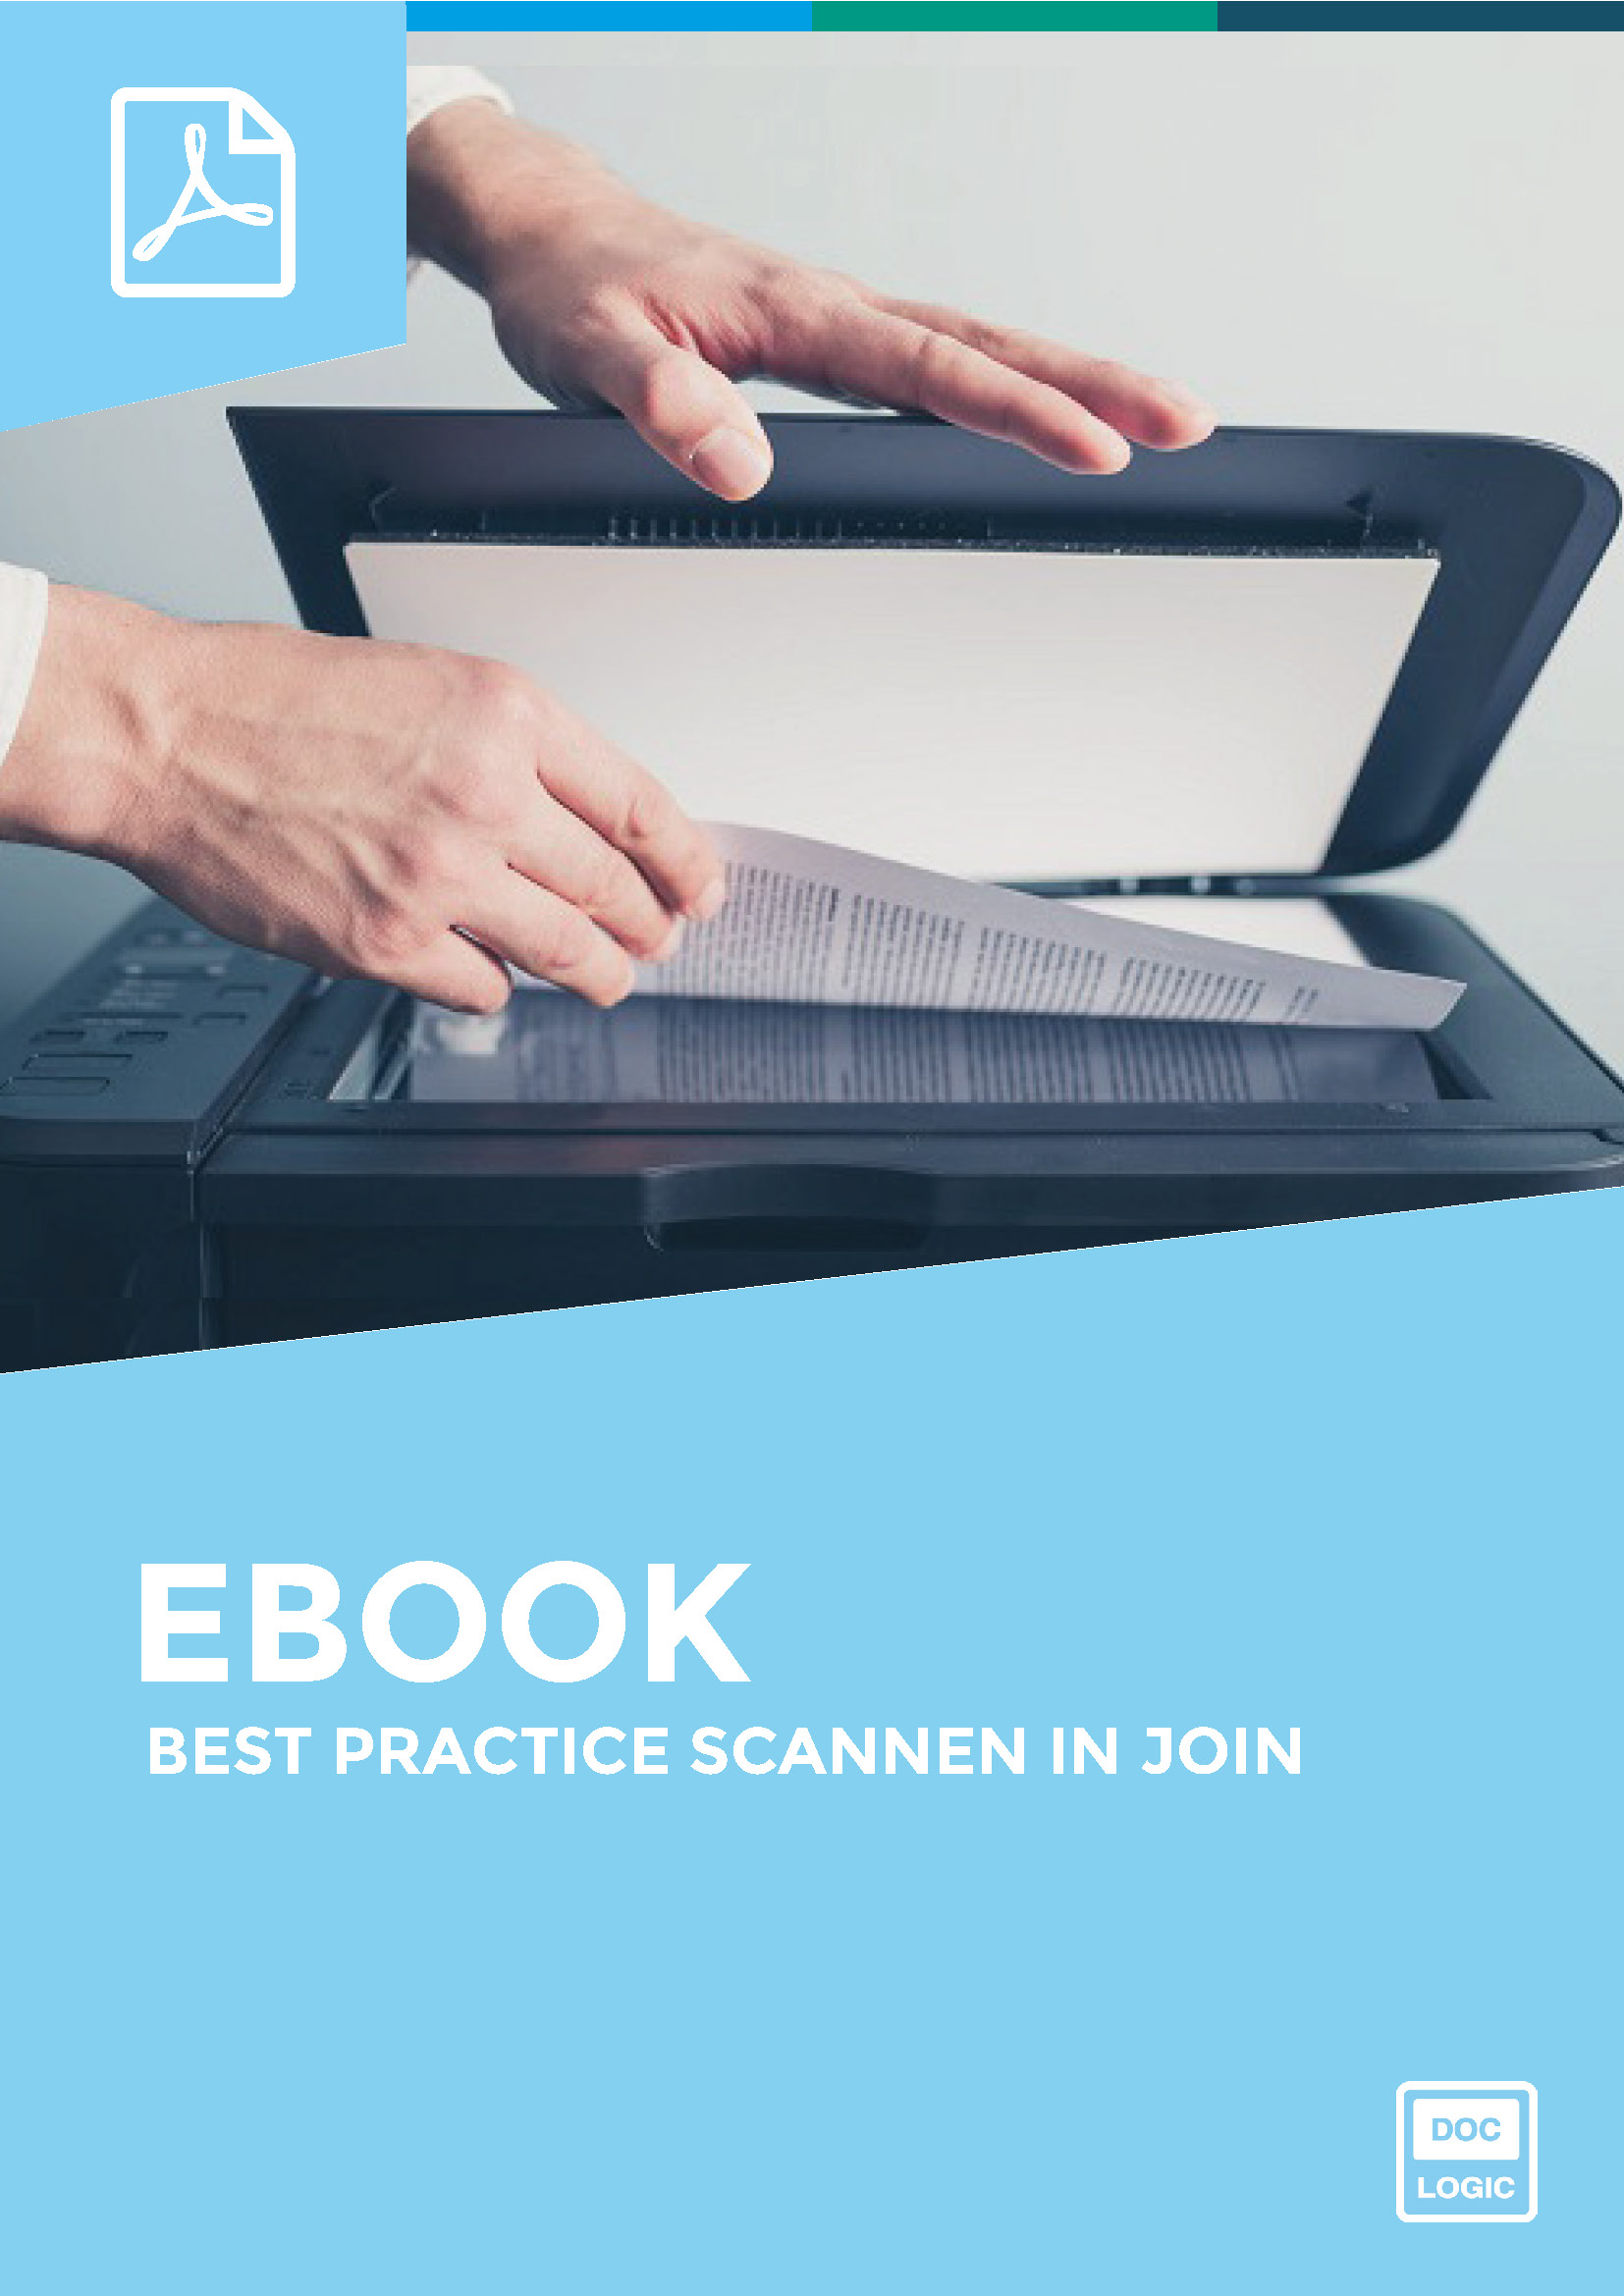 Ebook Best Practice scannen in JOIN